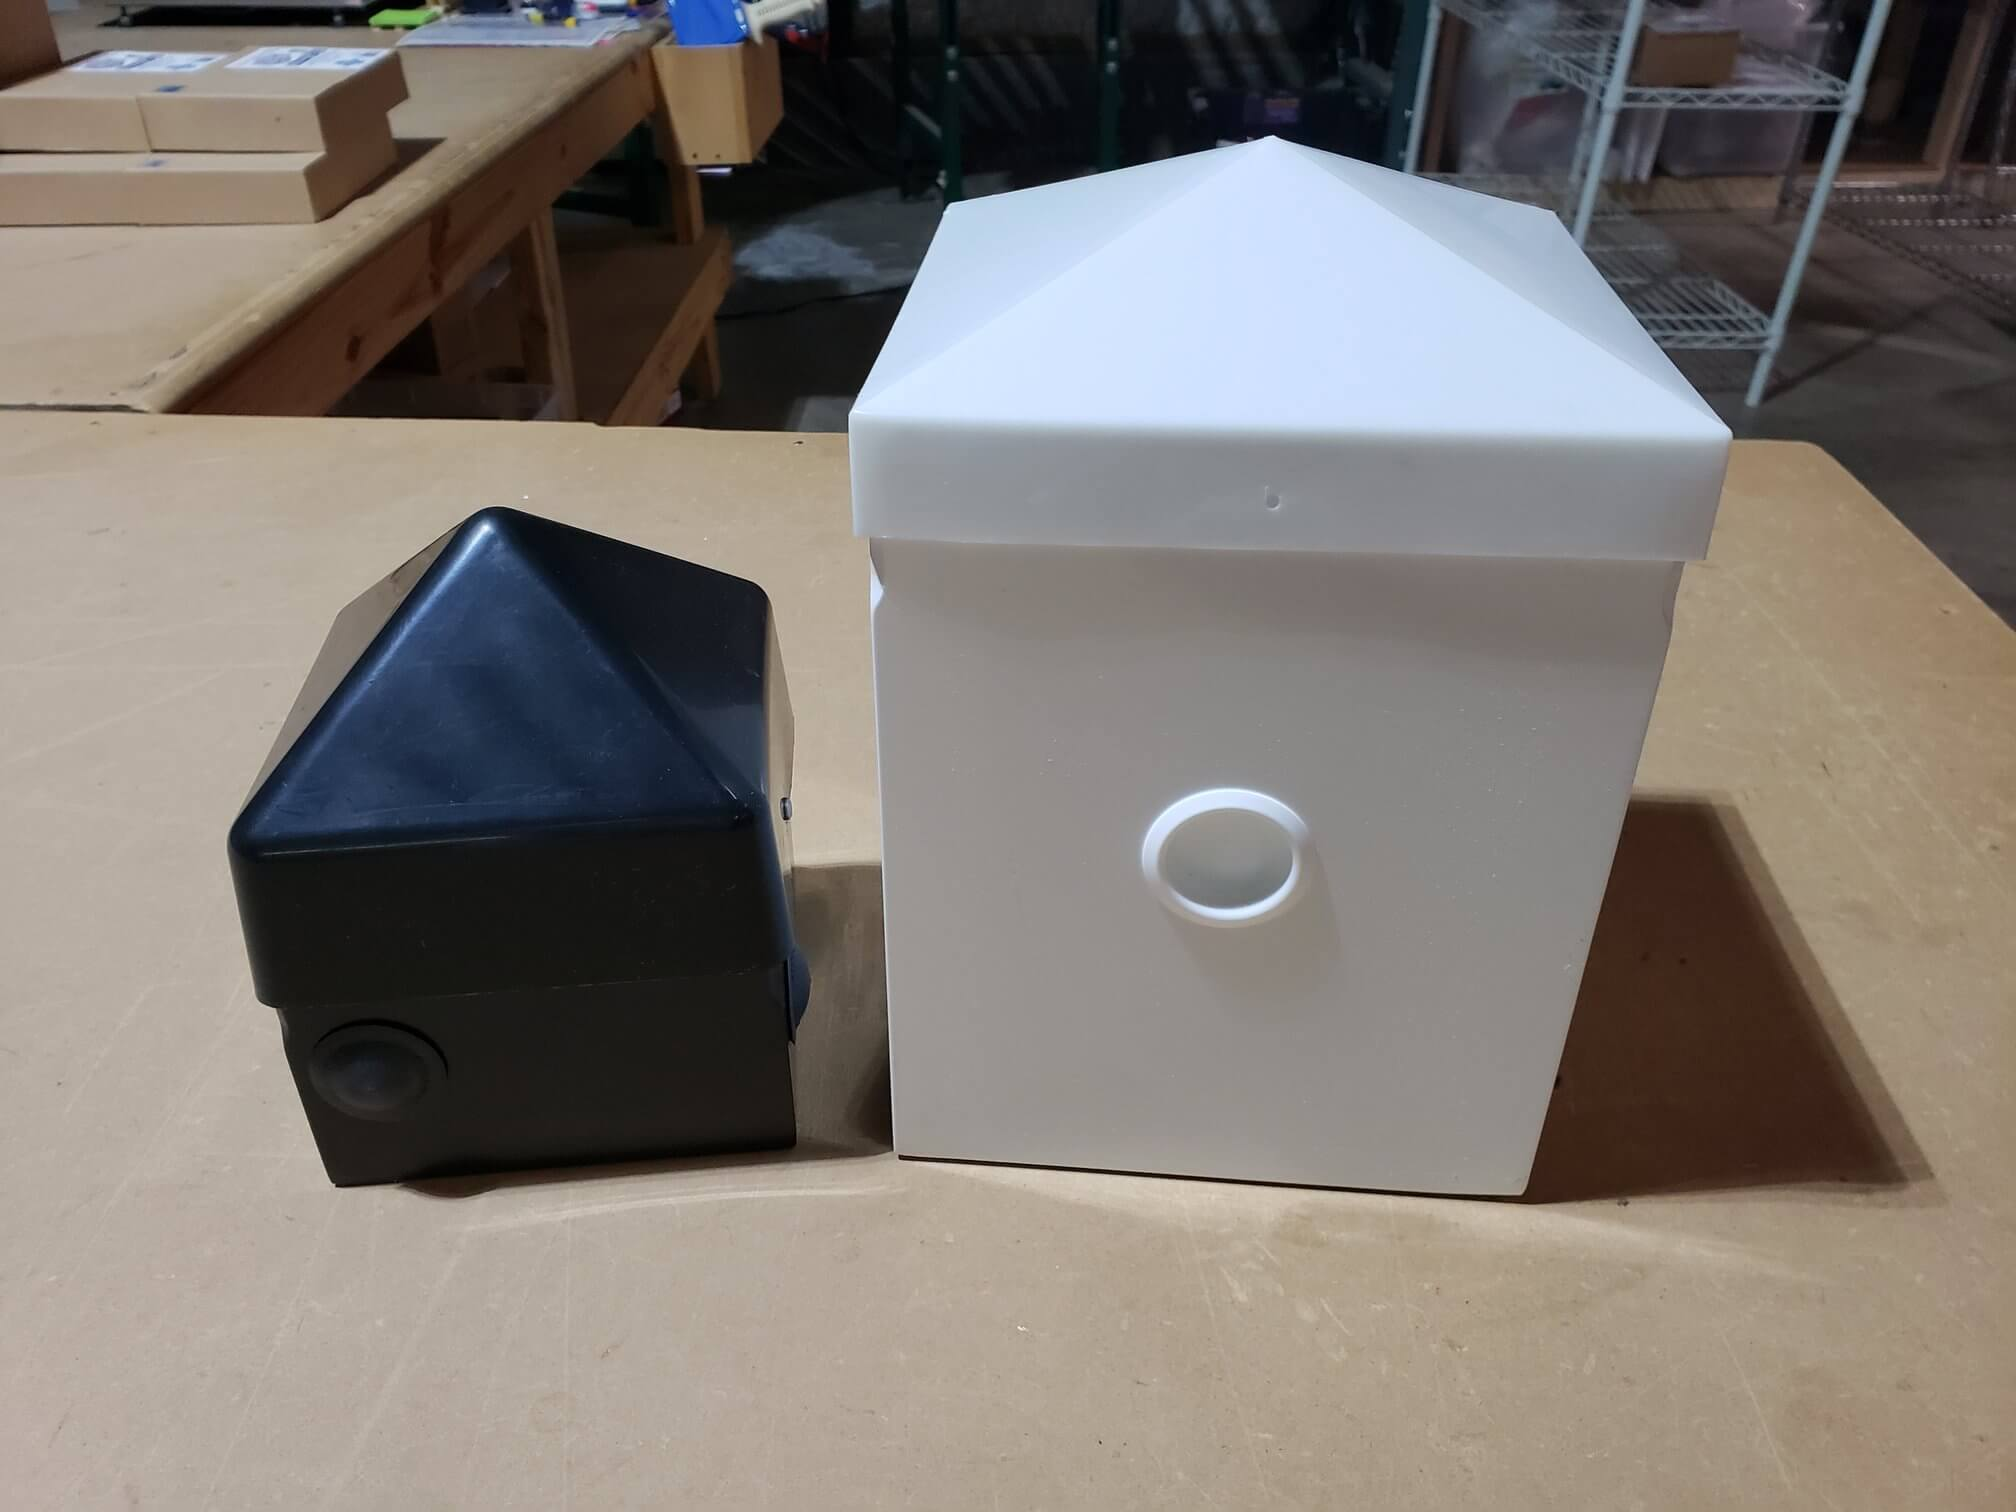 birdhouse and 6x6 junction box resize - Ultra Stable Platforms that is what the 6x6 Junction Box and the 8x10 Mounting Platforms.